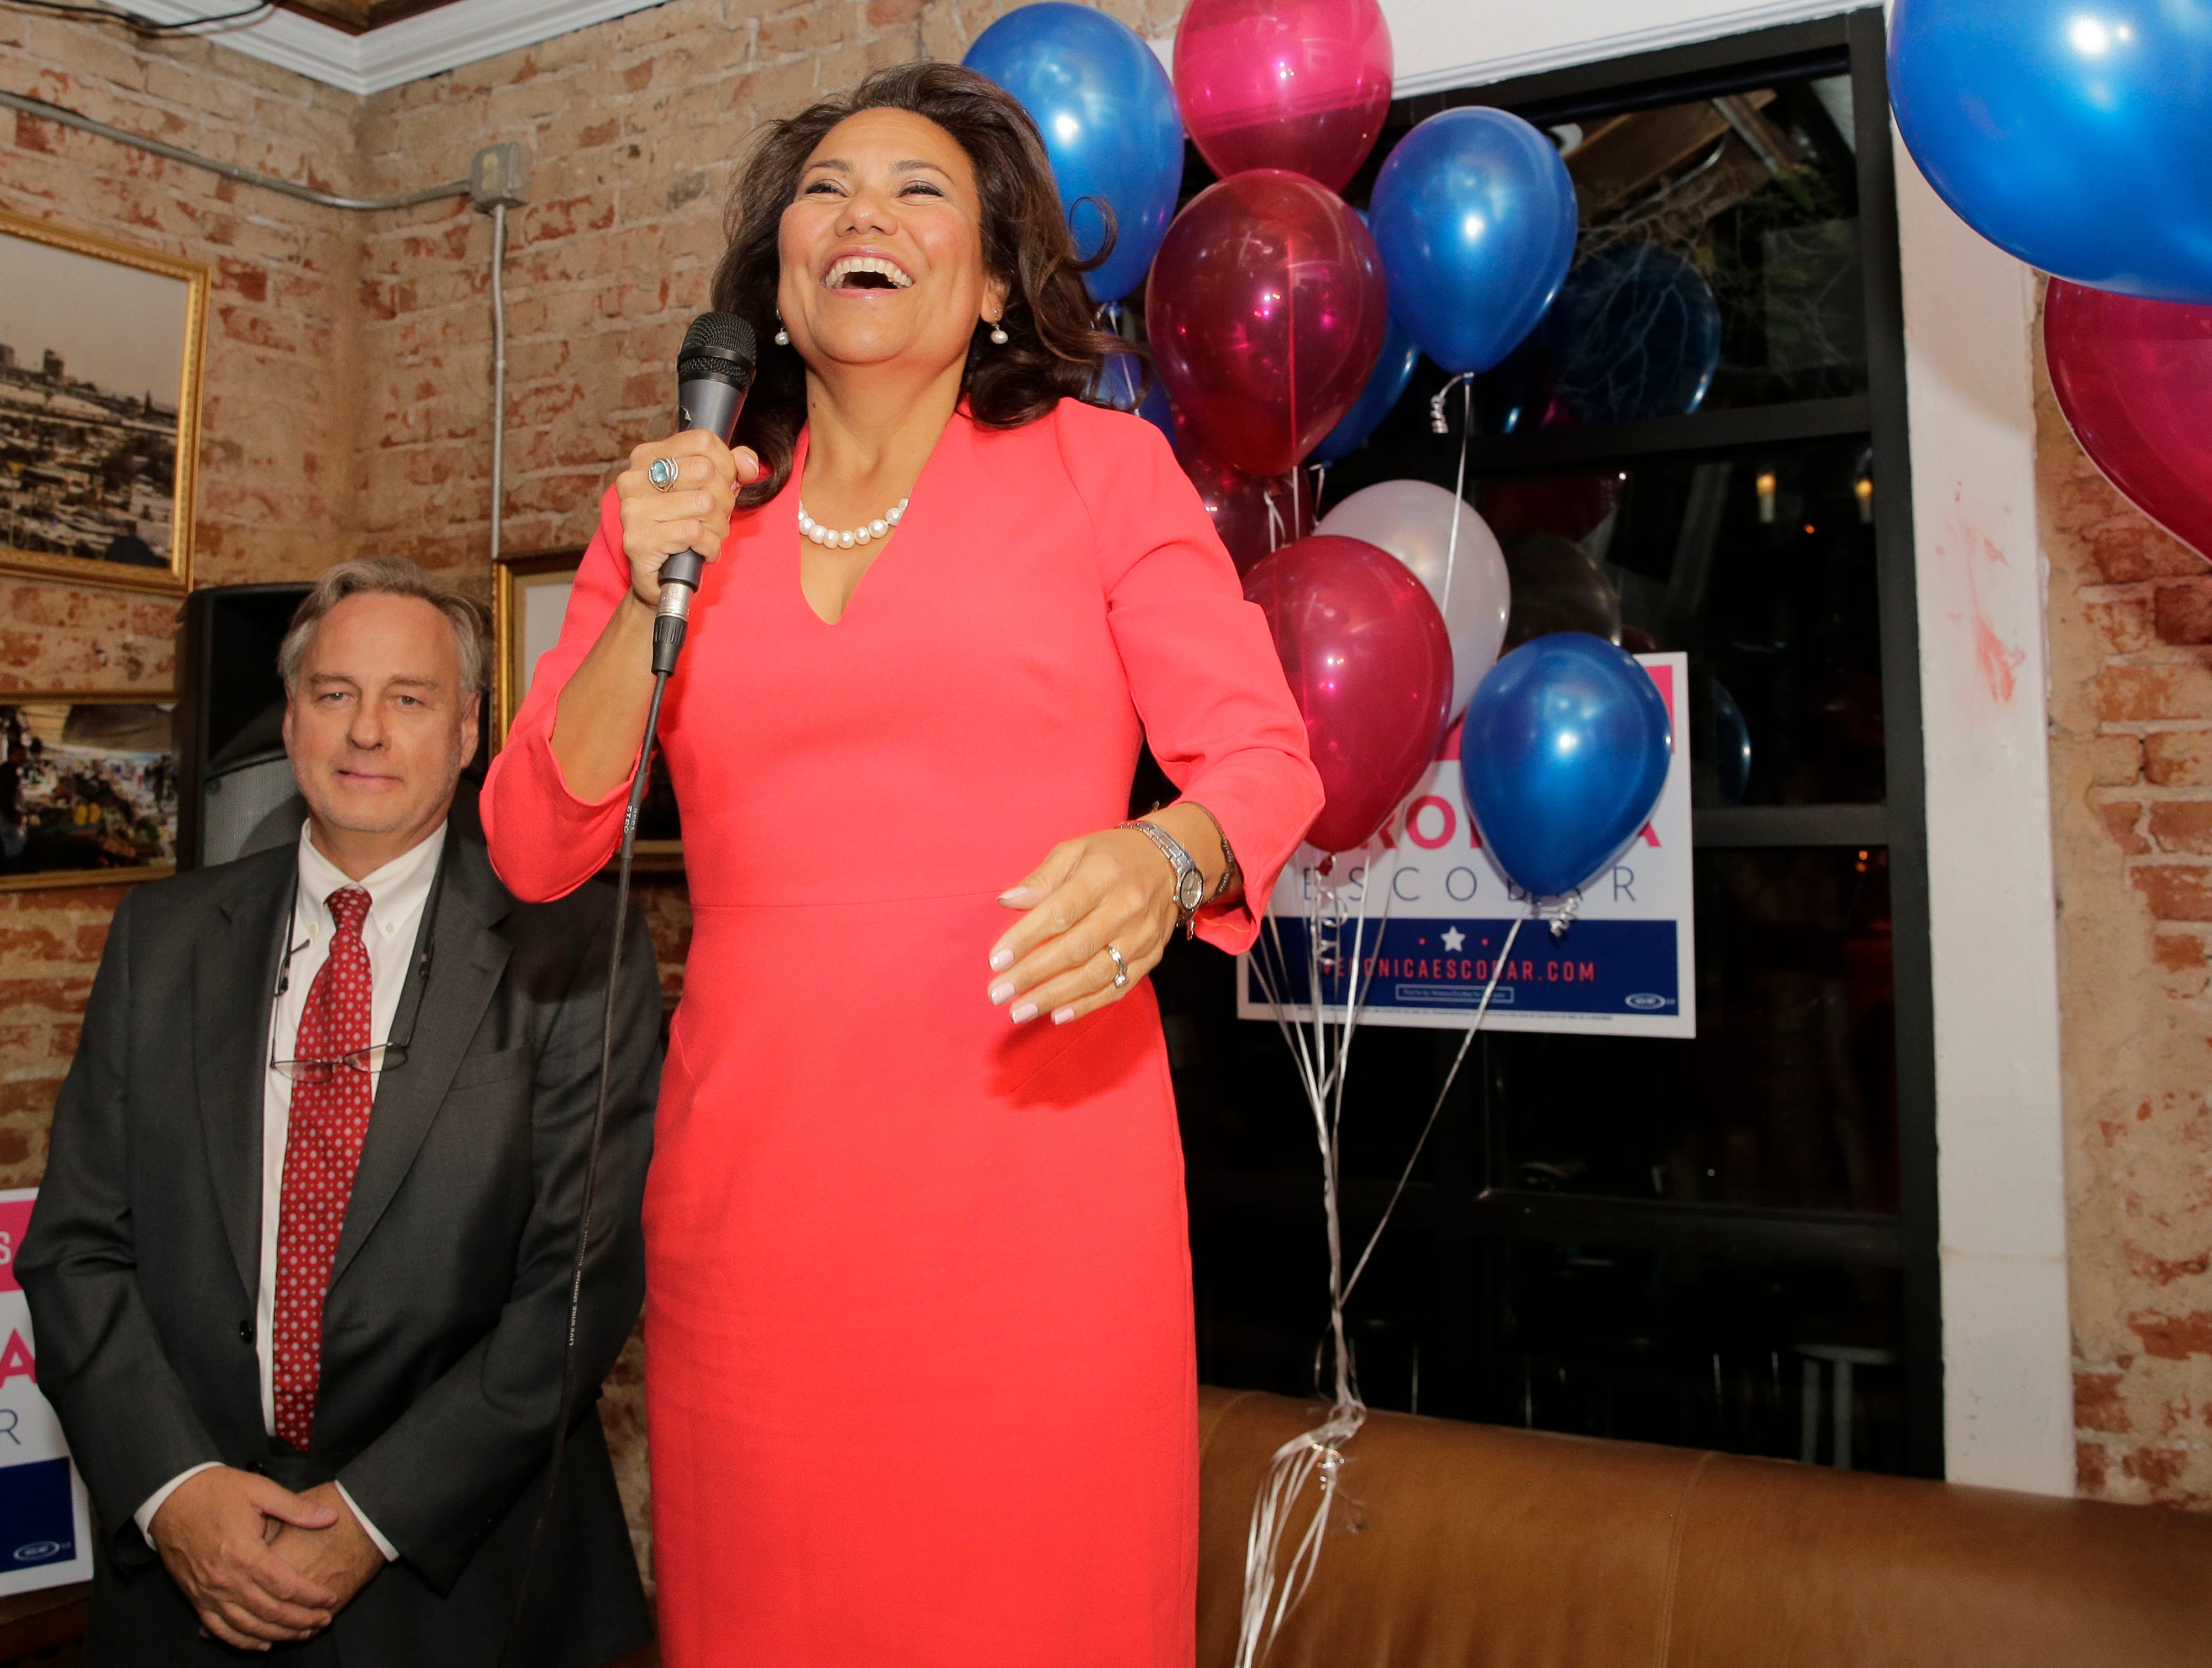 Veronica Escobar addressed supporters at her campaign party held at Later Later in downtown El Paso after having watched results come in at her central El Paso home with her family. Election results that confirmed that voters would make her among the first Latinas from the State of Texas in Congress.